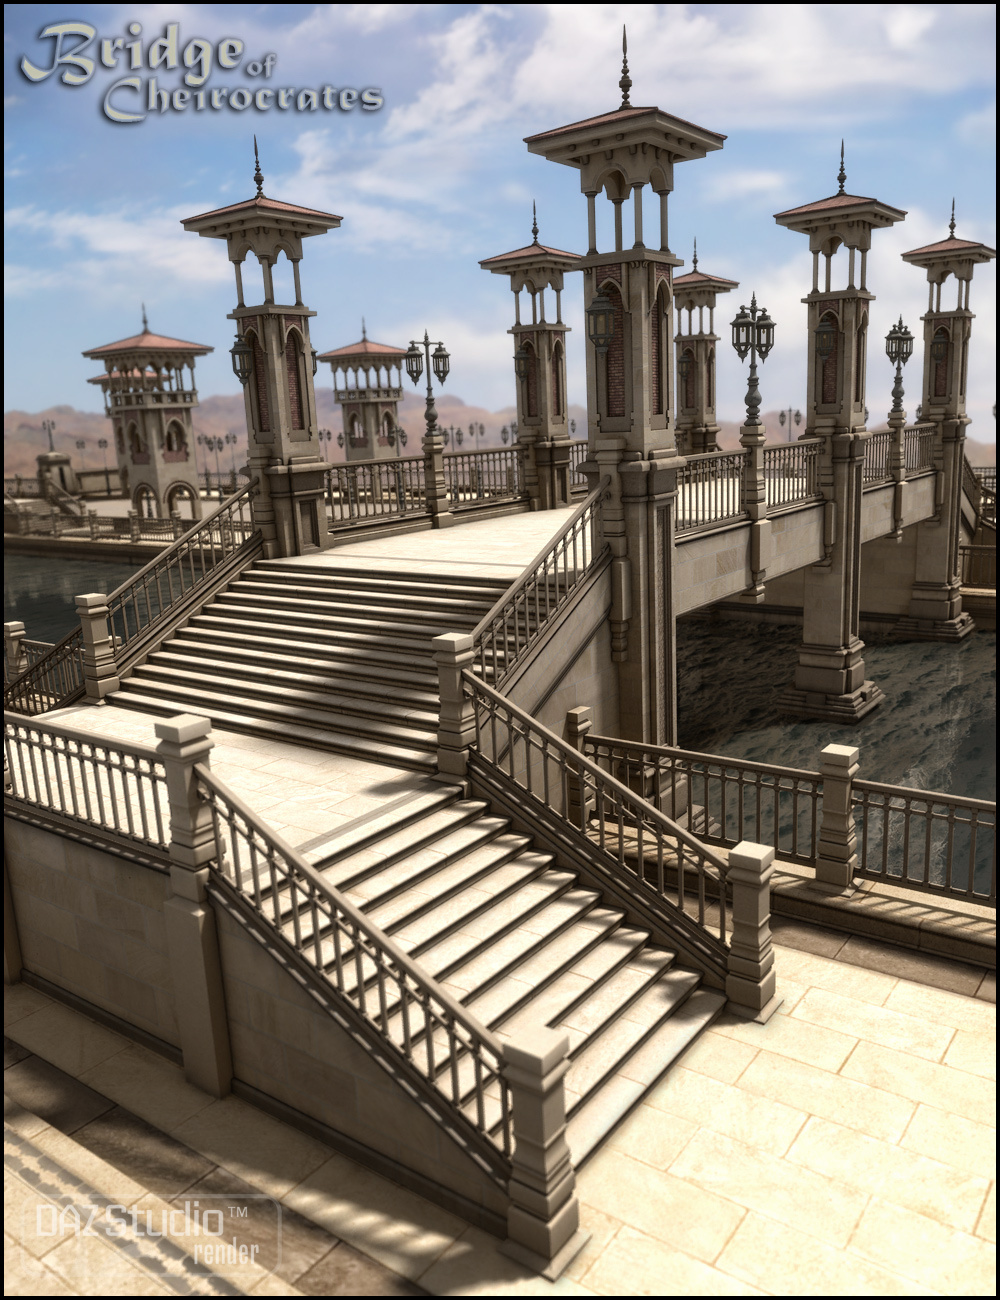 Bridge of Cheirocrates by: Jack Tomalin, 3D Models by Daz 3D